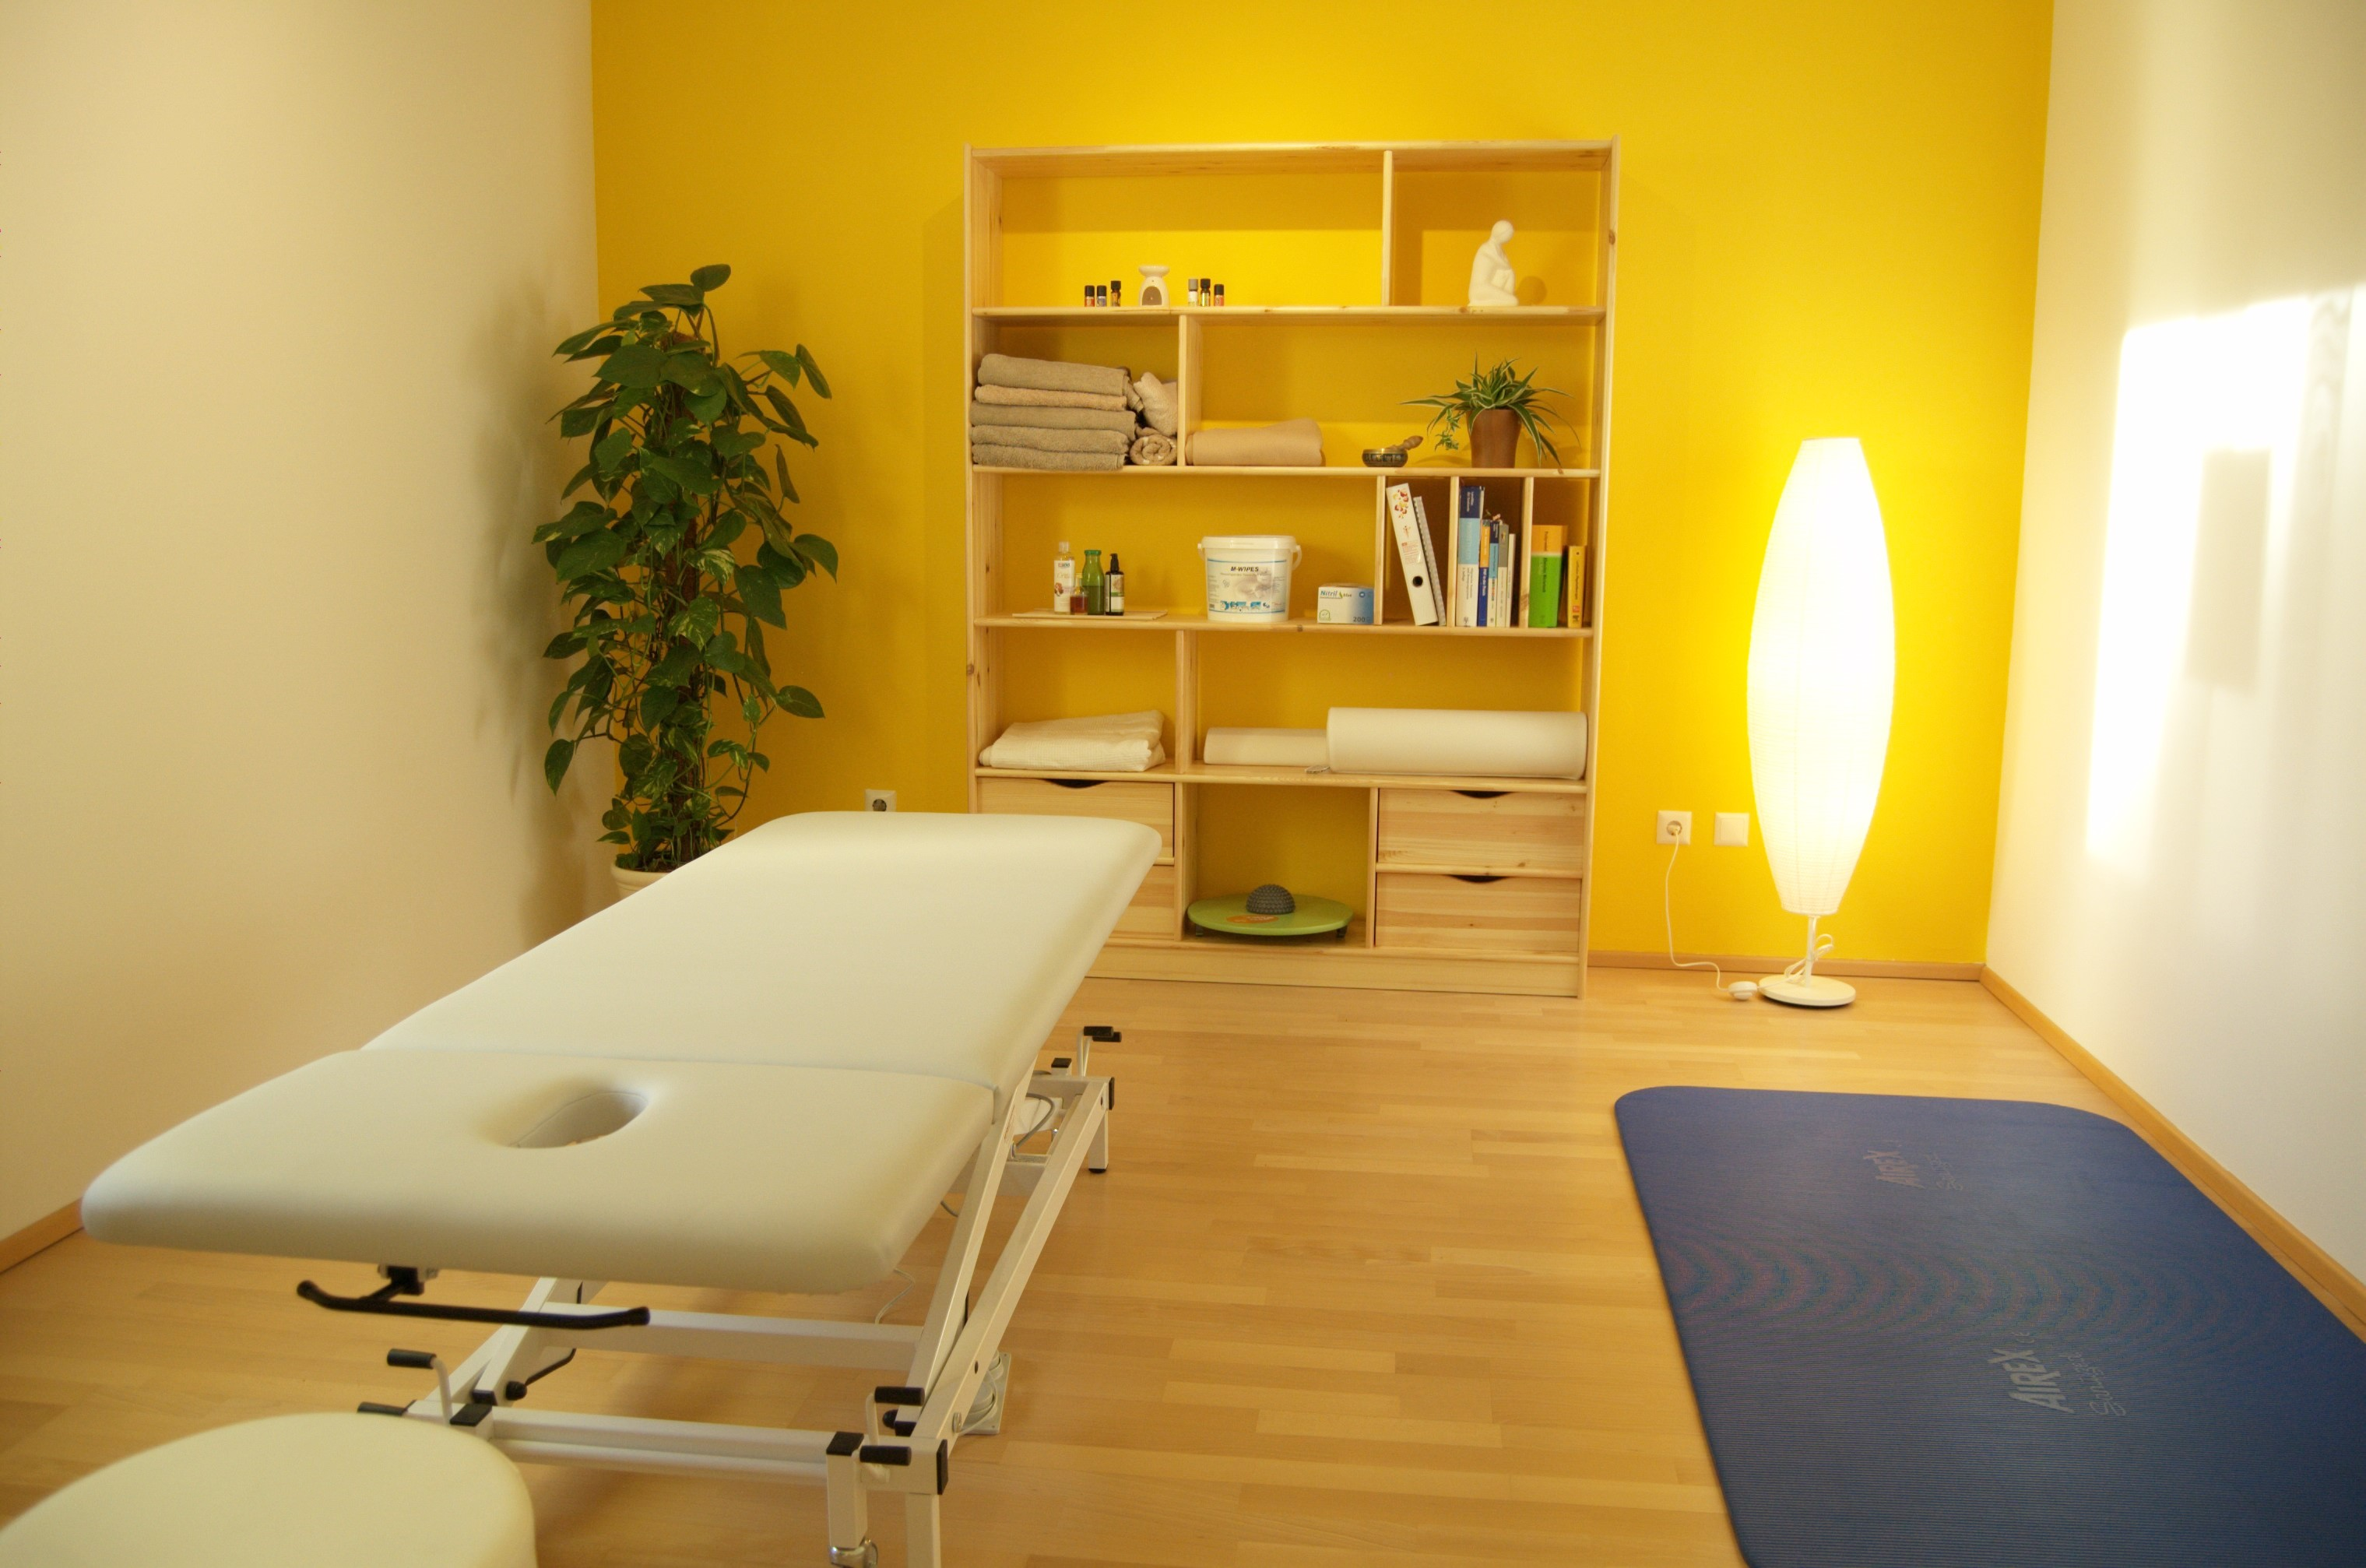 Physiotherapieraum